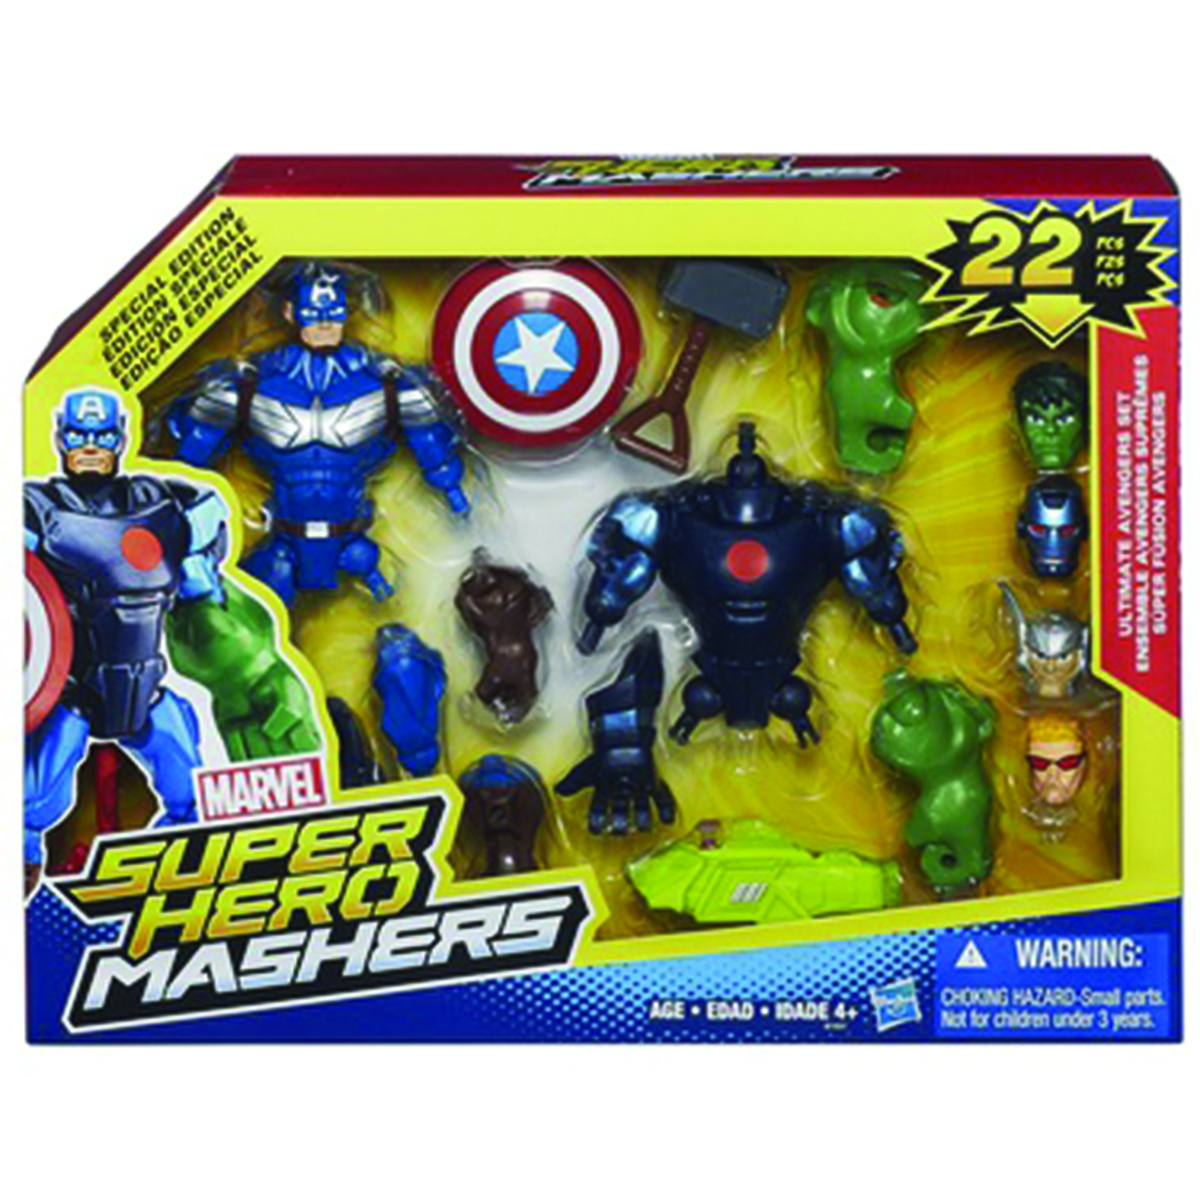 AVENGERS SH MASHER ULTIMATE AVENGER SET CS